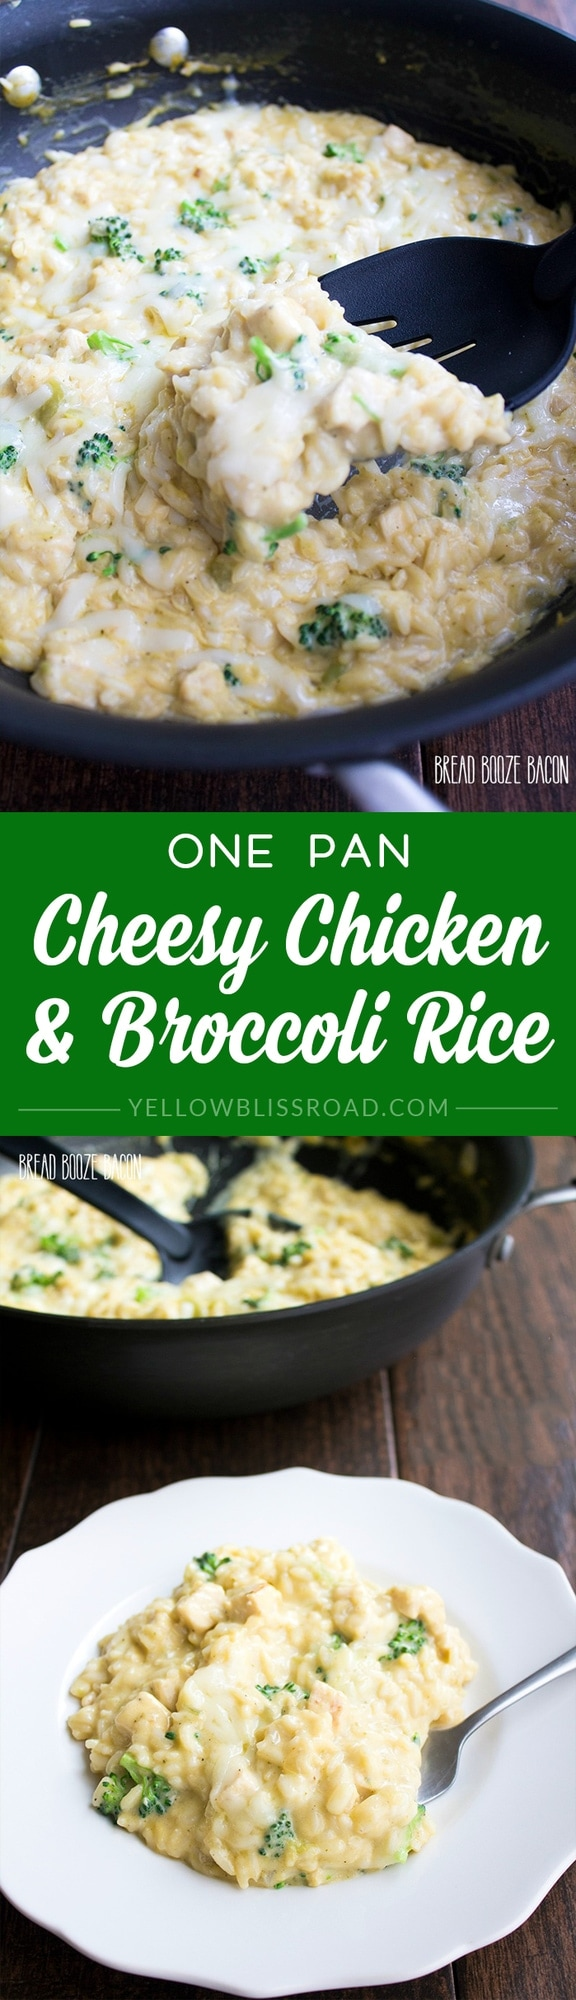 One Pan Cheesy Chicken Broccoli Rice